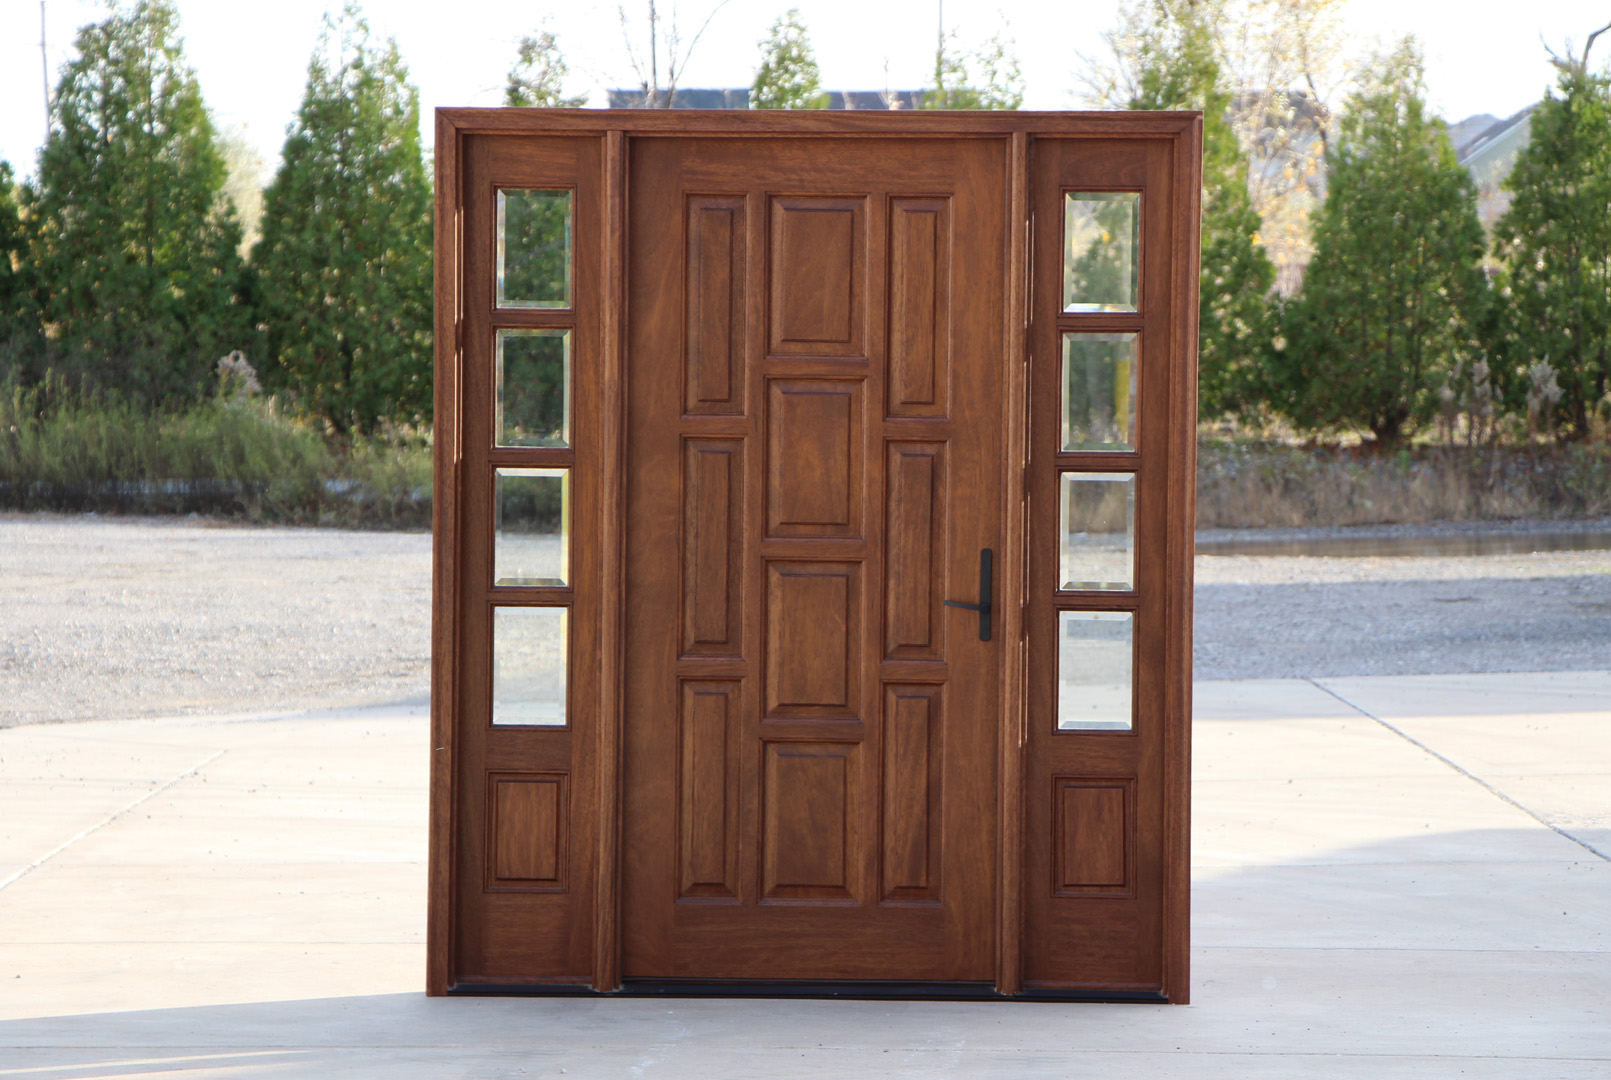 1080 #6C4231 Exterior Mahogany Door With Sidelights picture/photo Entry Doors With Sidelights 41991611